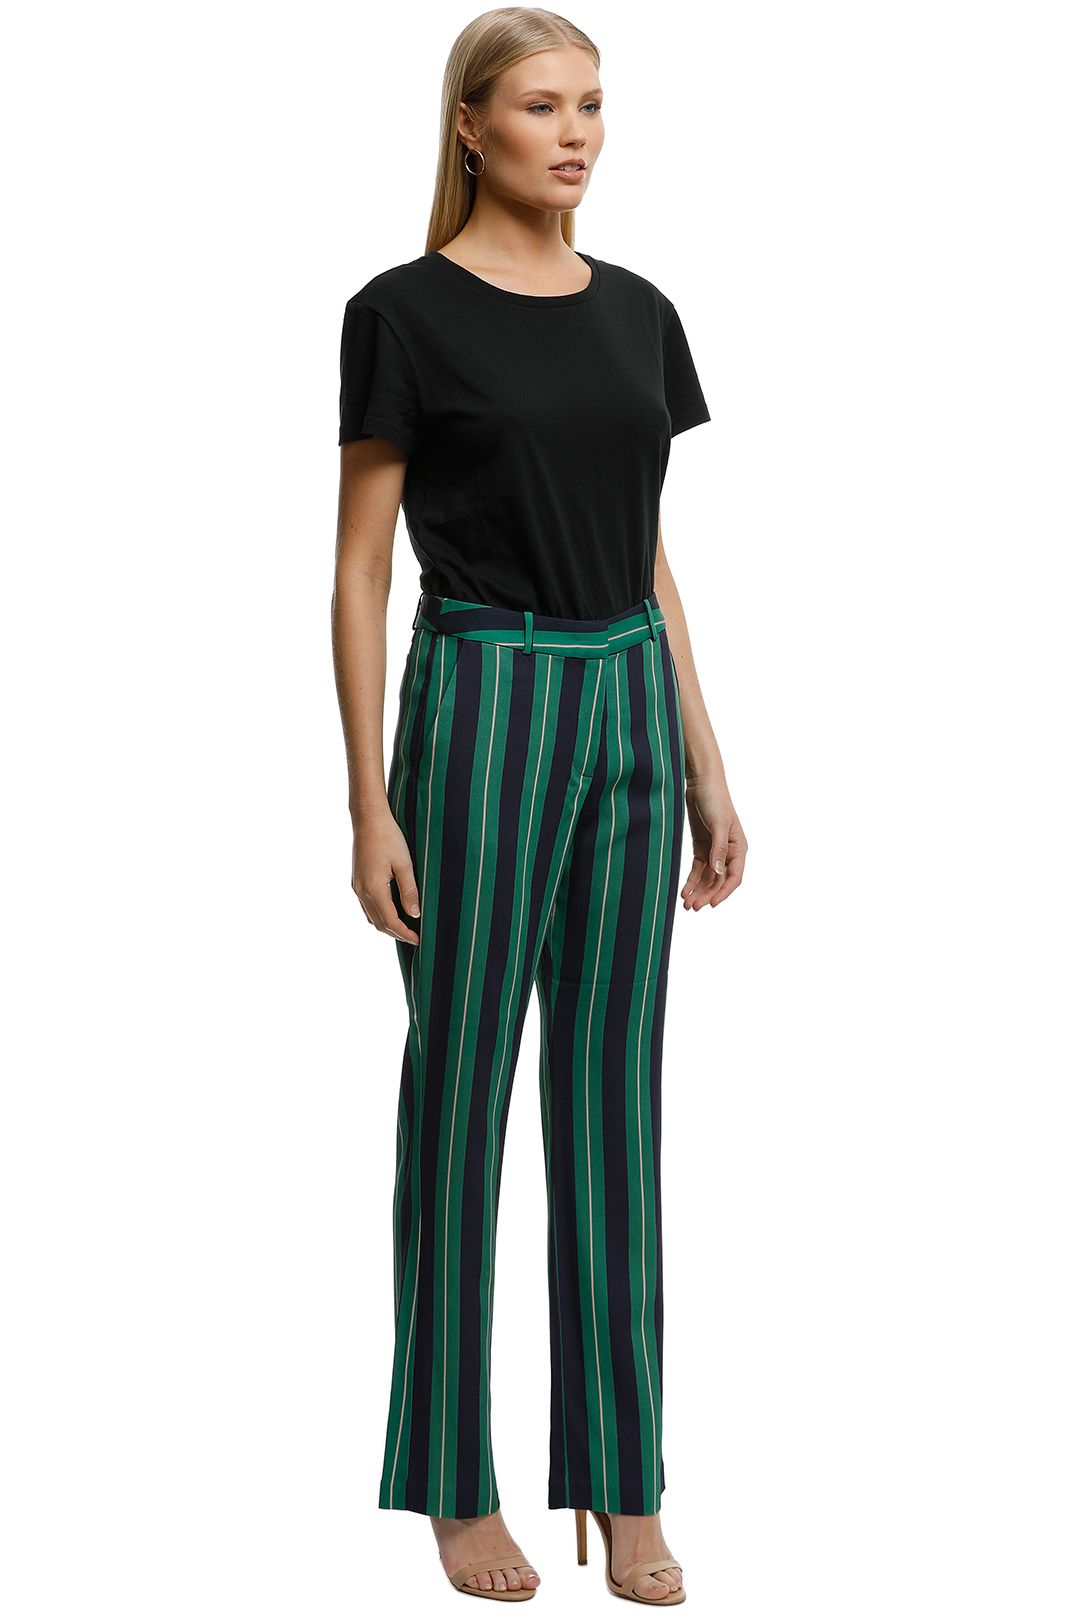 Moss-and-Spy-Gatsby-Pant-Green-Stripe-Side